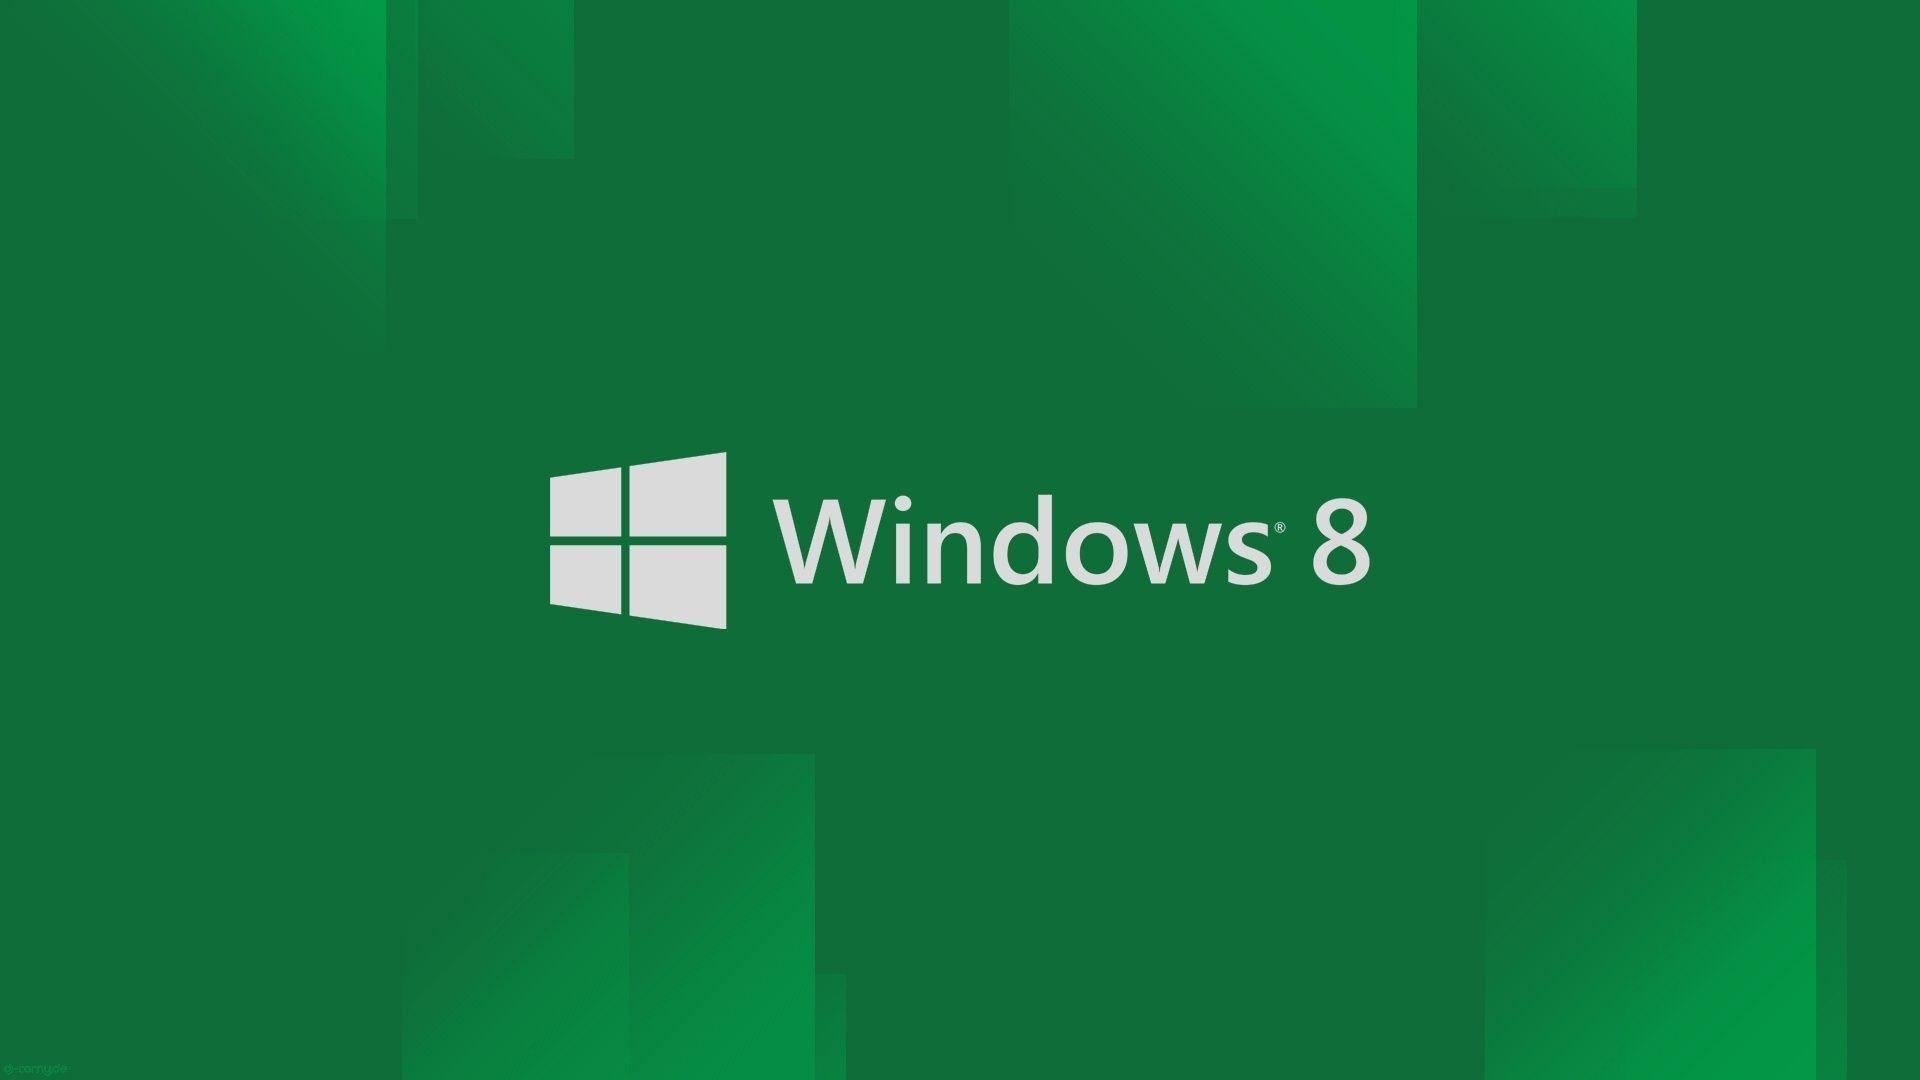 windows 8 wallpapers 1080p - wallpaper cave